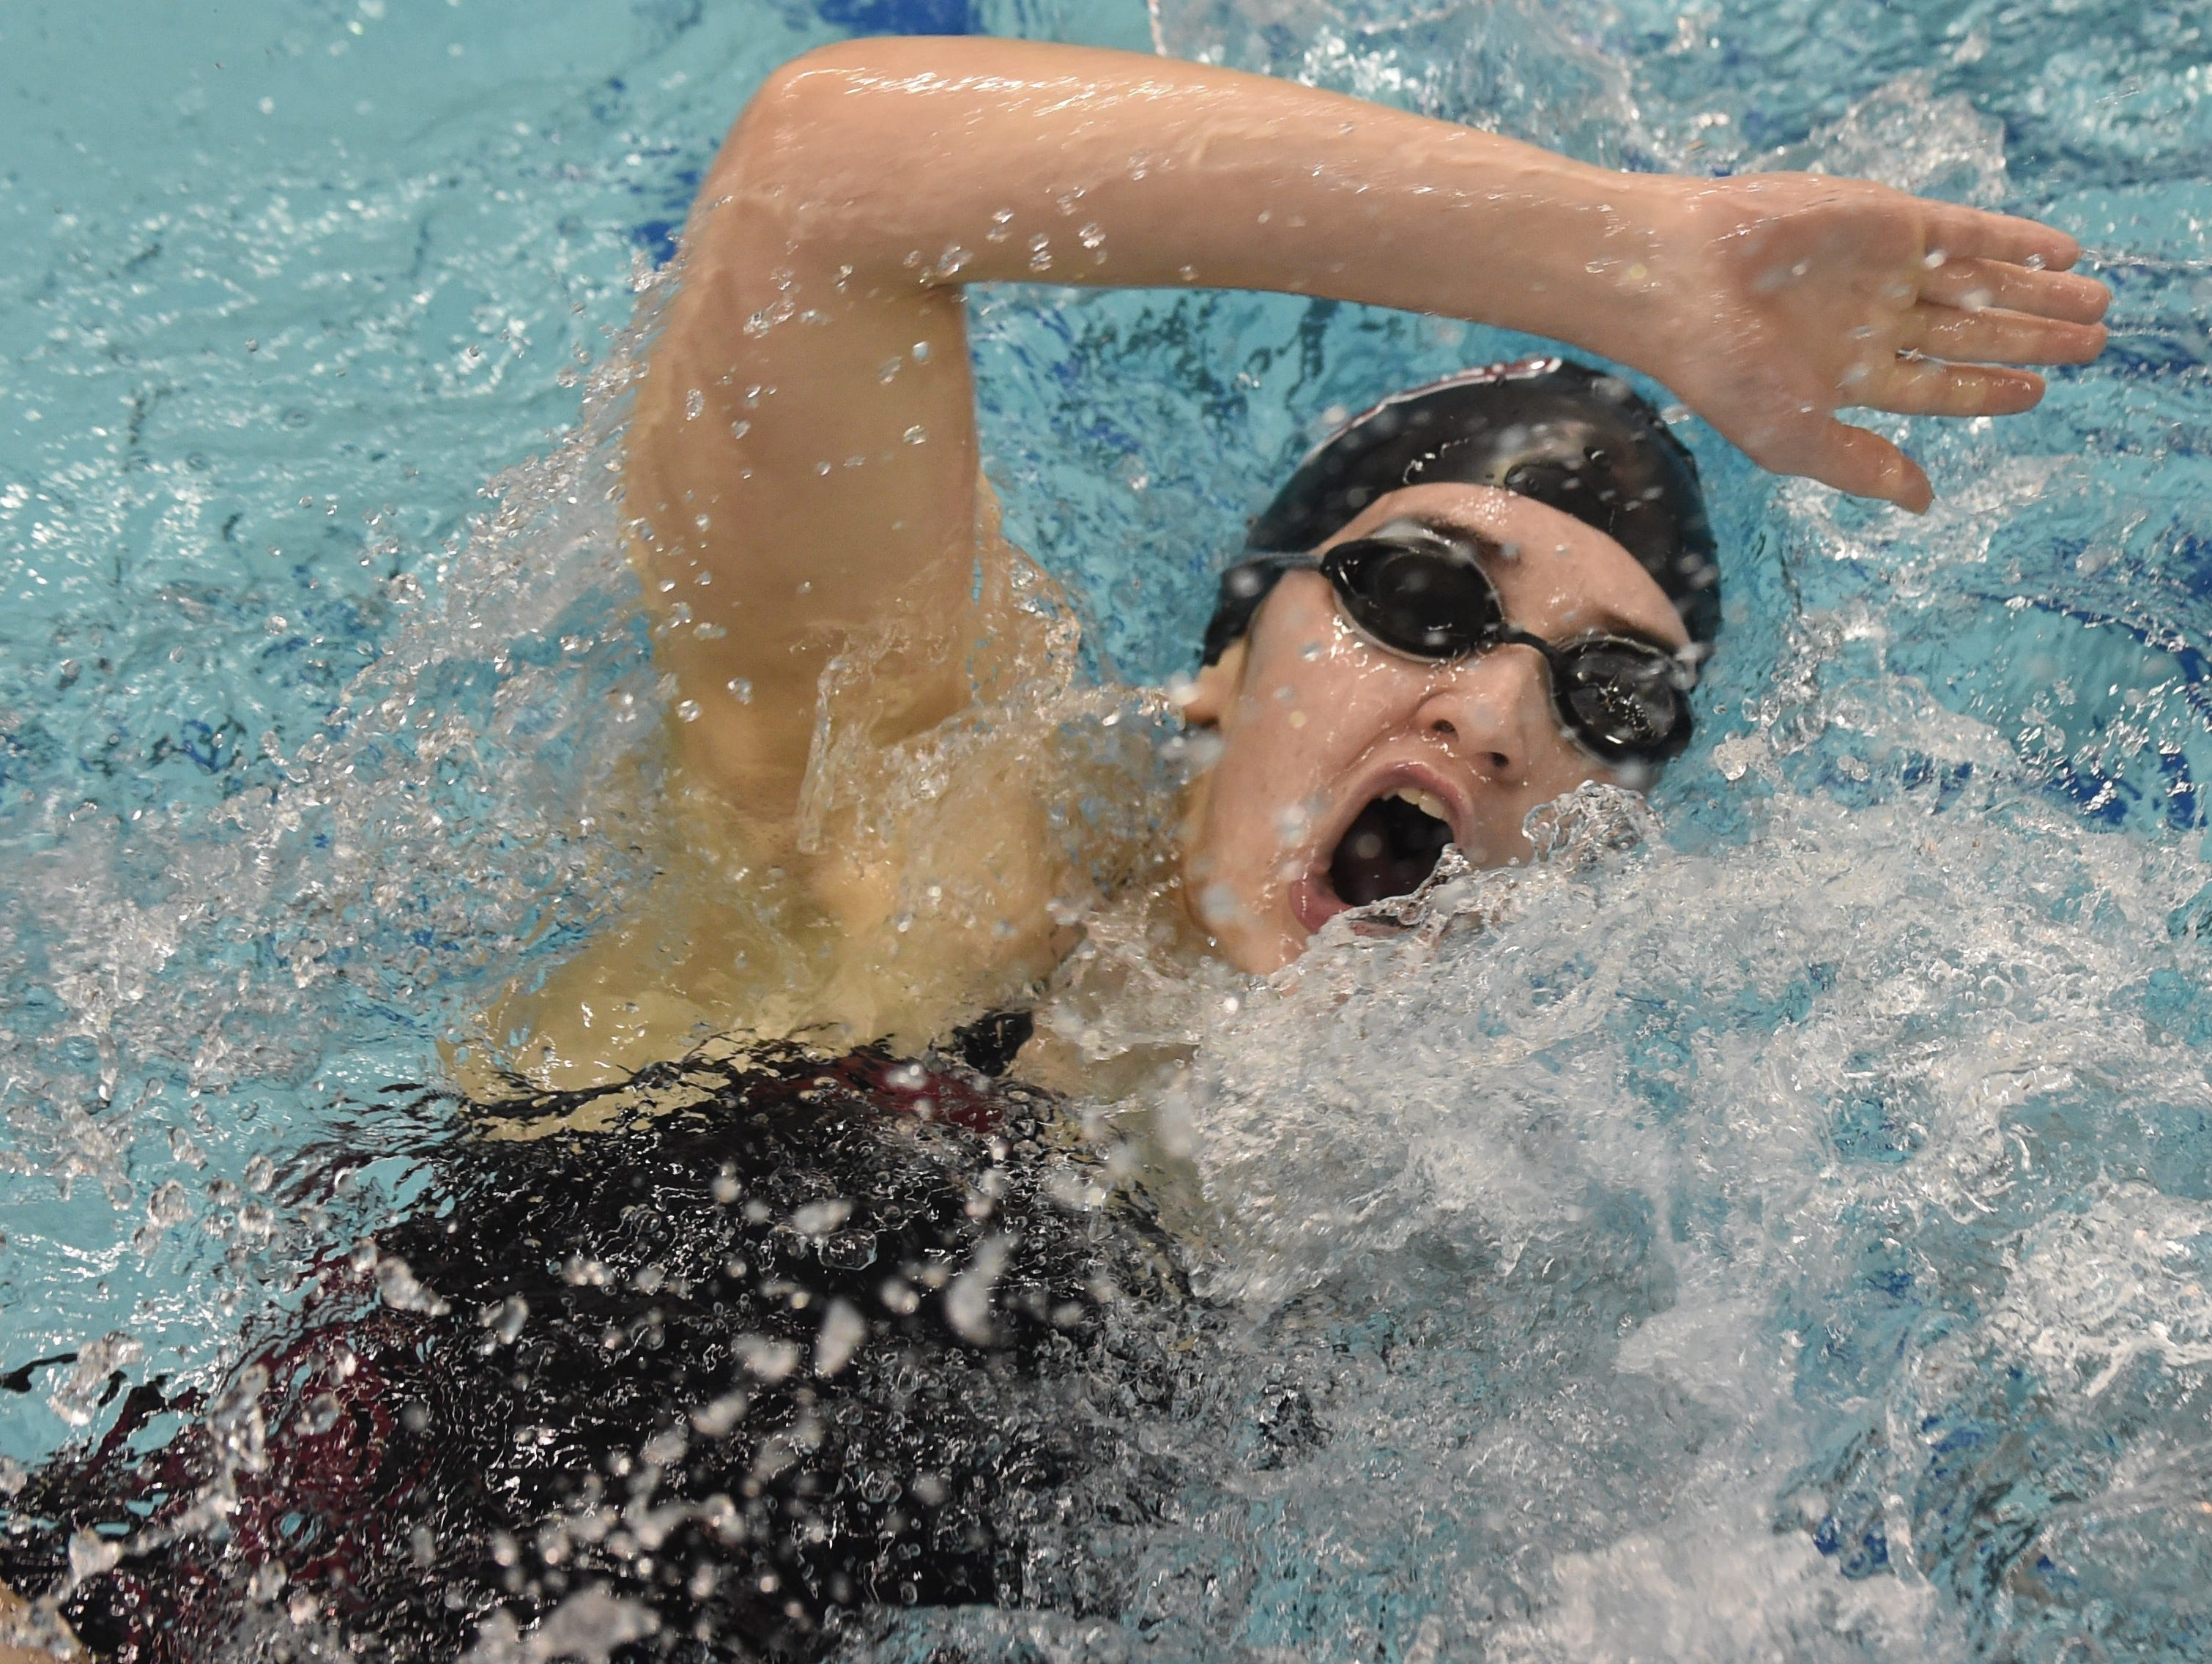 Images from Saturday's North Central Conference Swimming and Diving Championships at Purdue. Abigail Saunders.